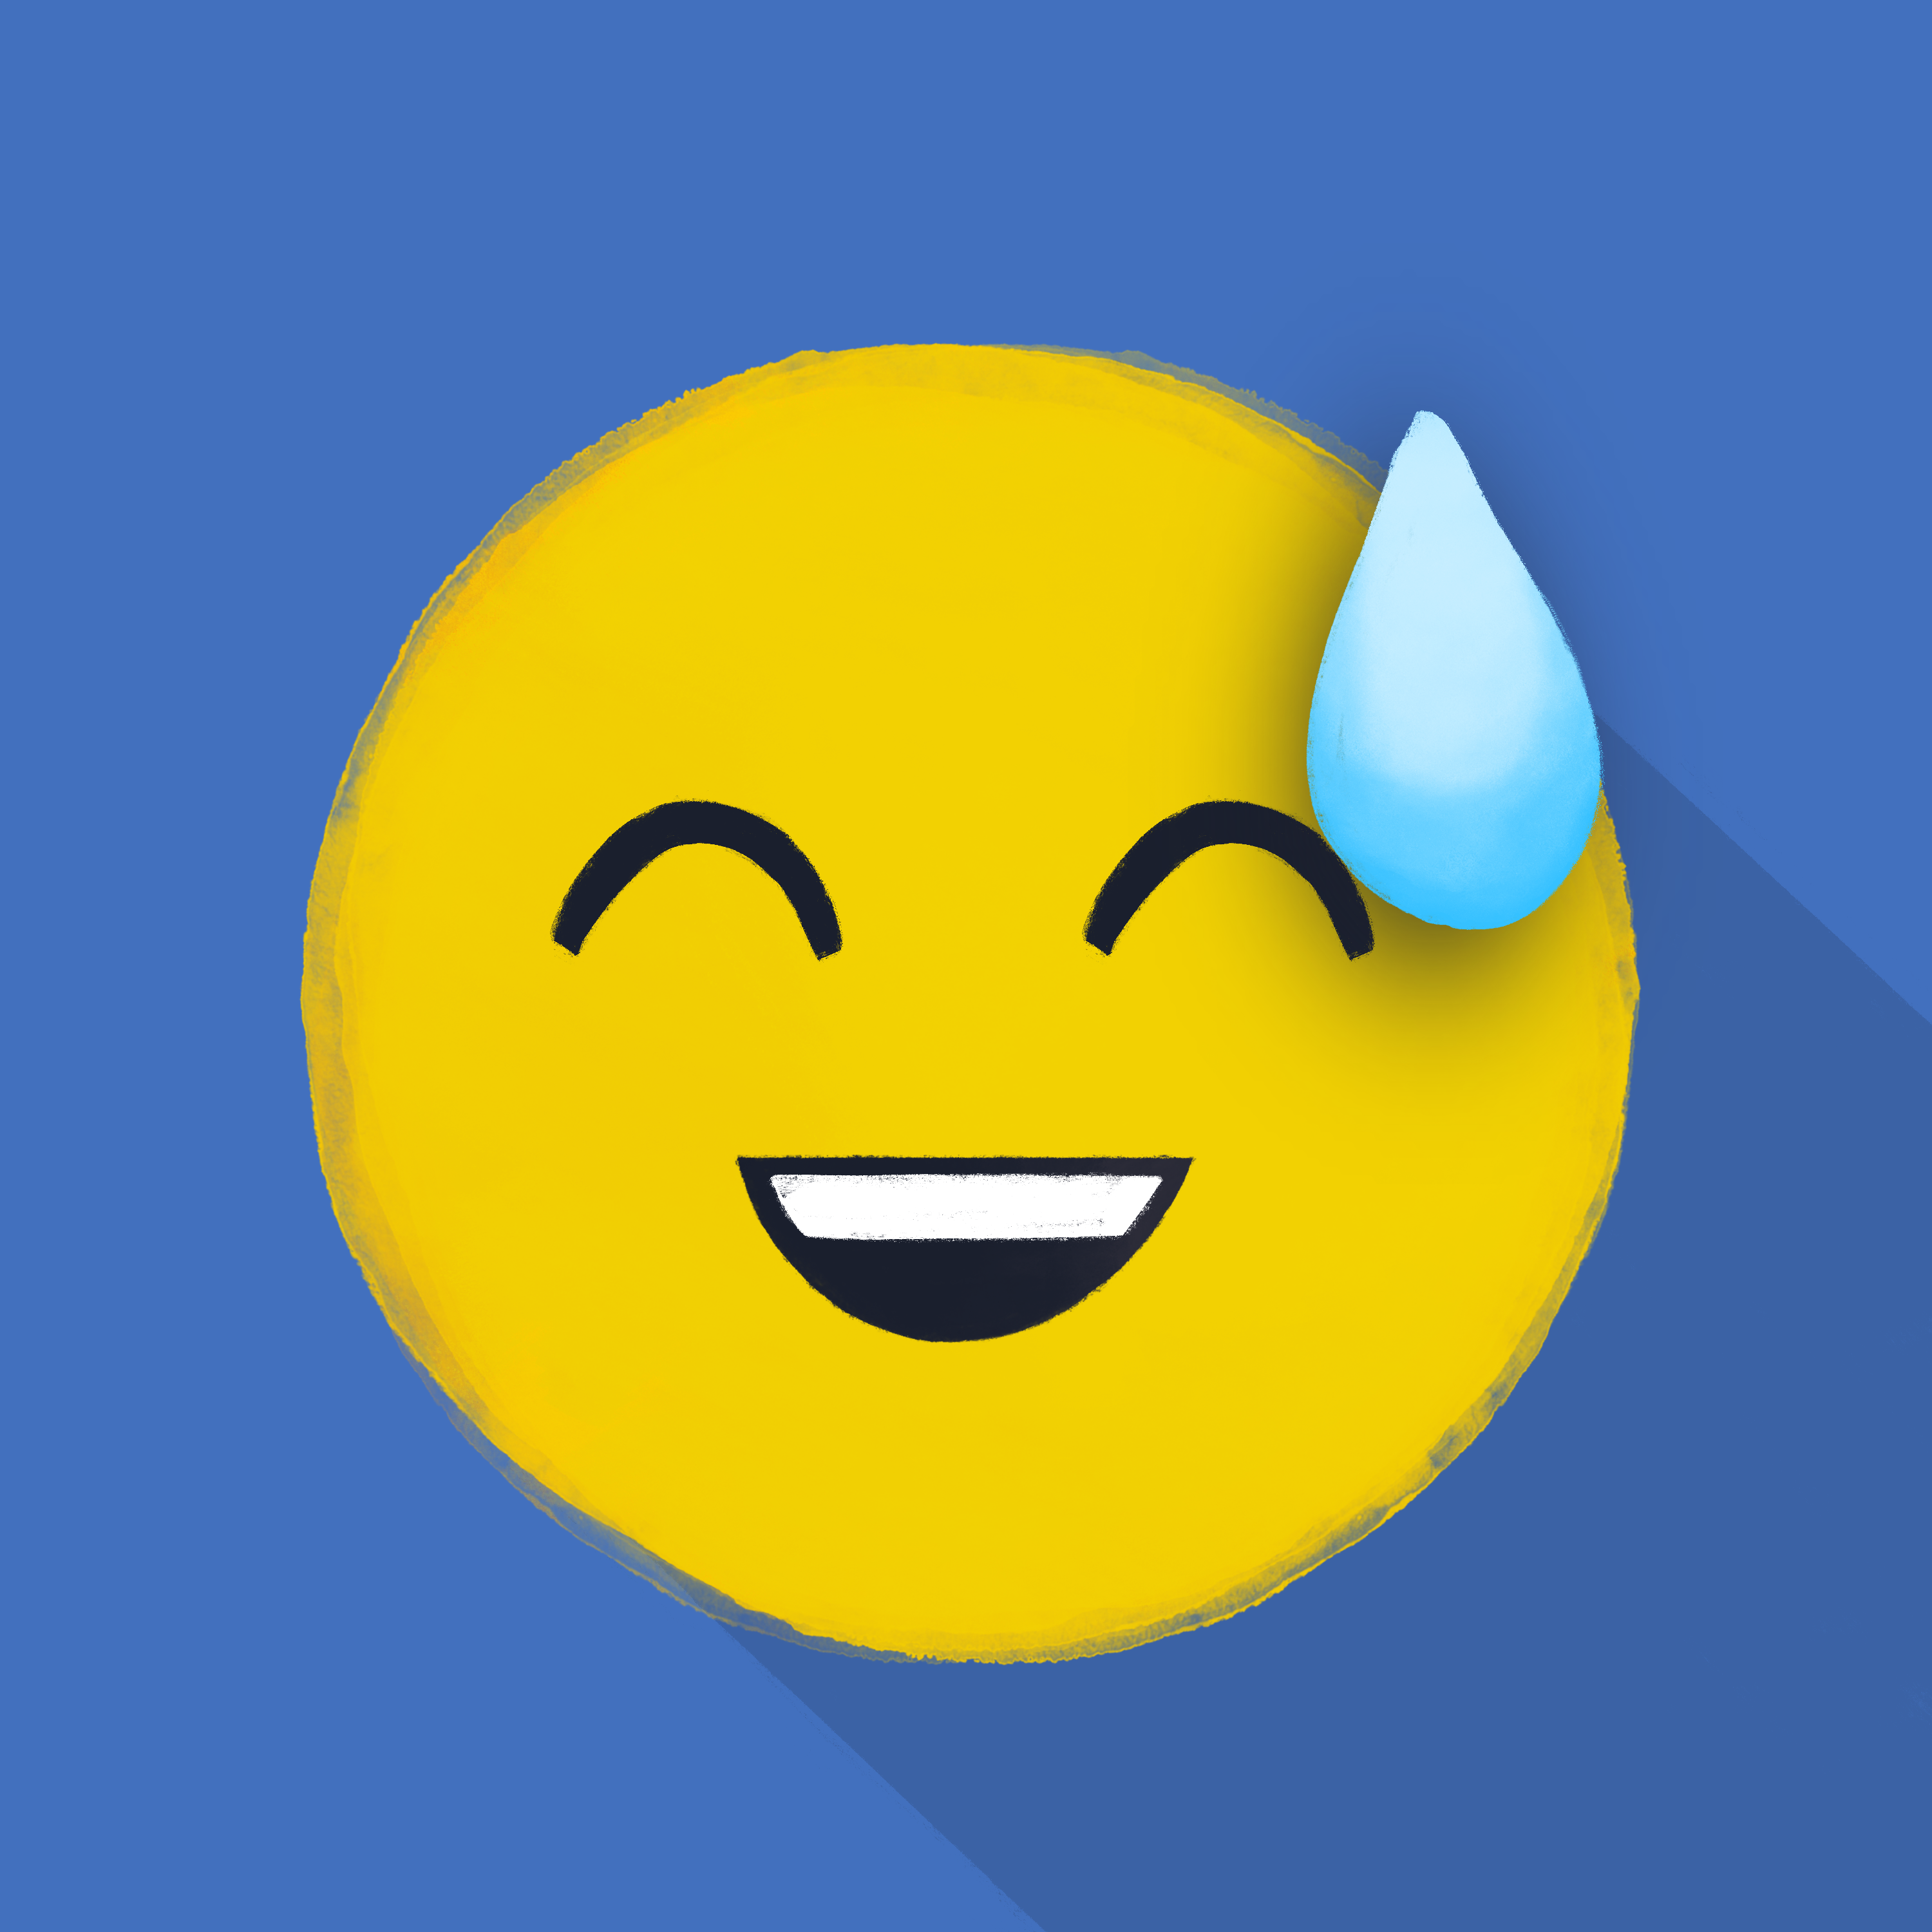 5-Emoji-Reimagined-Grinning_Face_With_Sweat_-Kiwani-Dolean